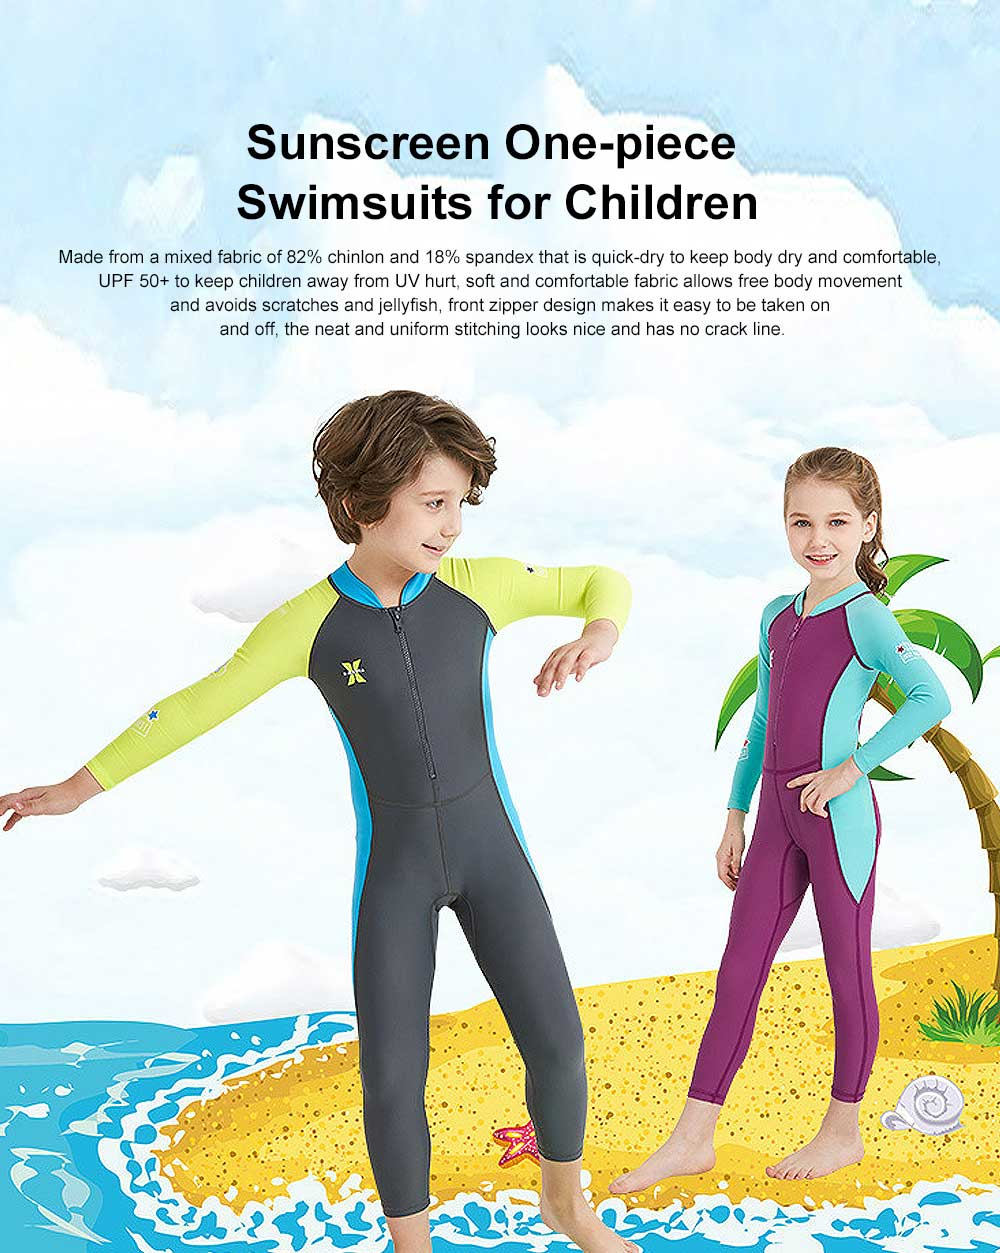 New Style Diving Suit for Children, Outdoor Used One-piece Sunscreen Diving Dress, Long Sleeves Quick-dry Children's Swimsuits All Season 0